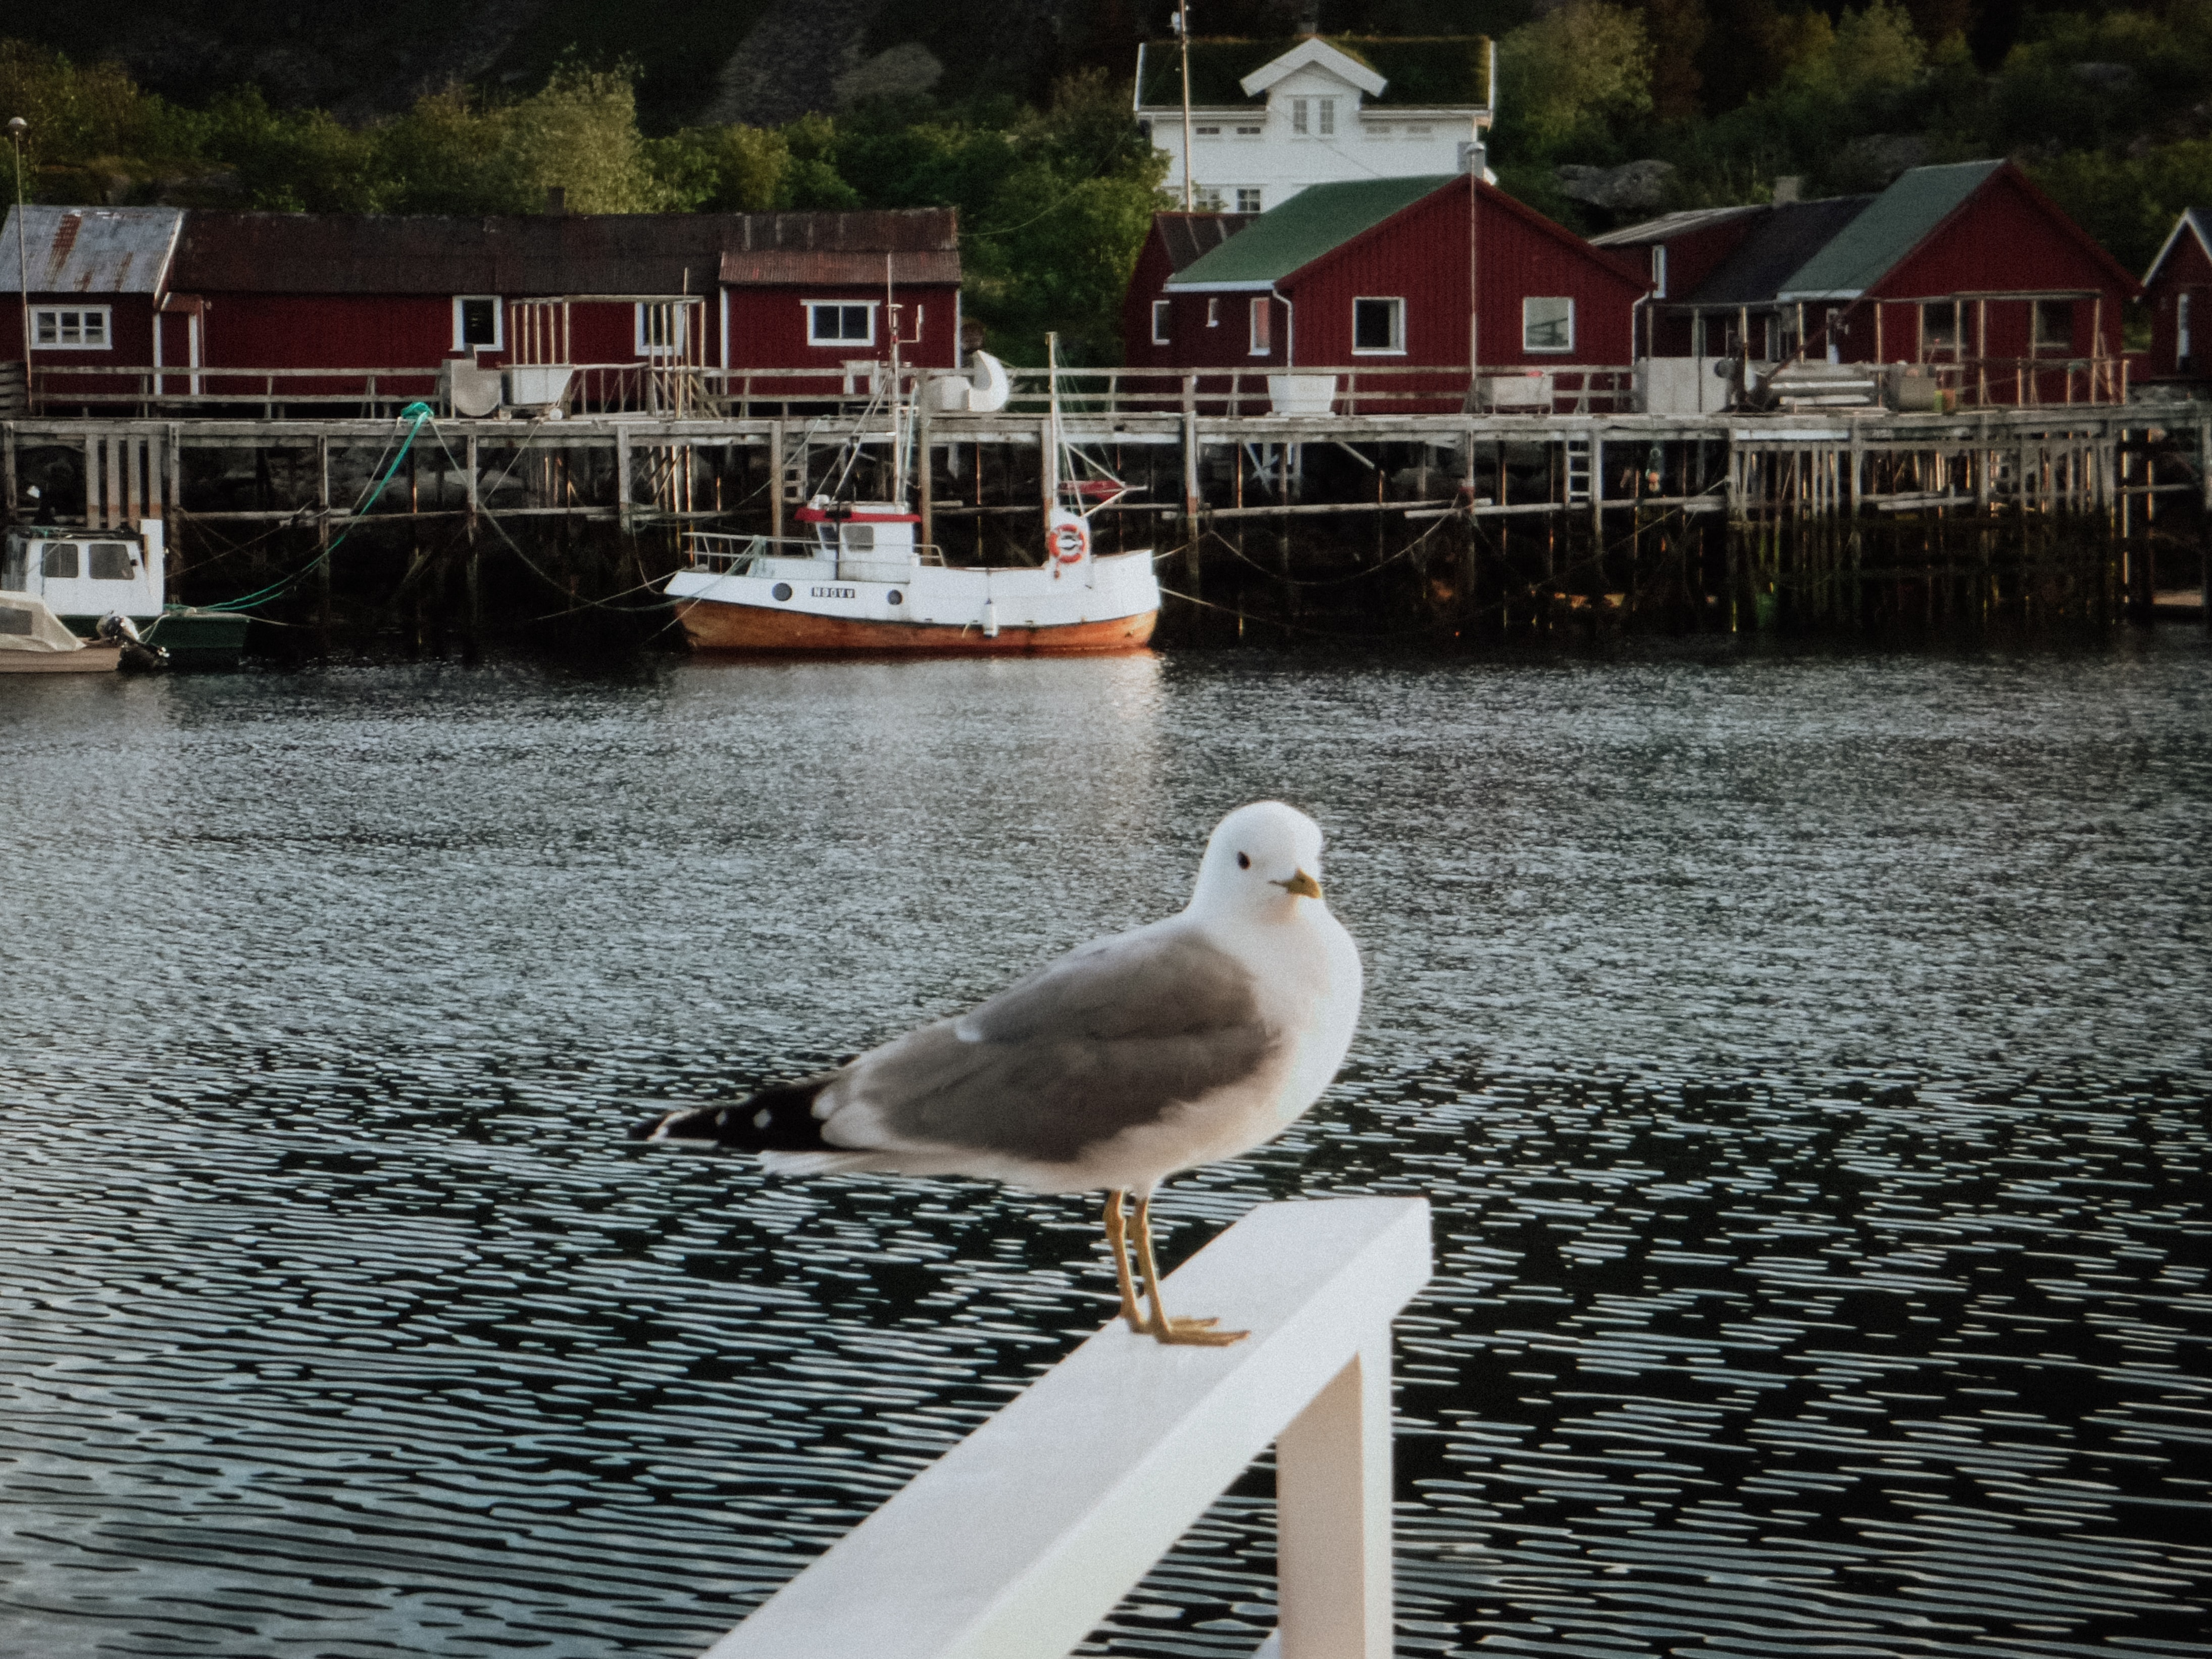 white and black seagull on wooden dock